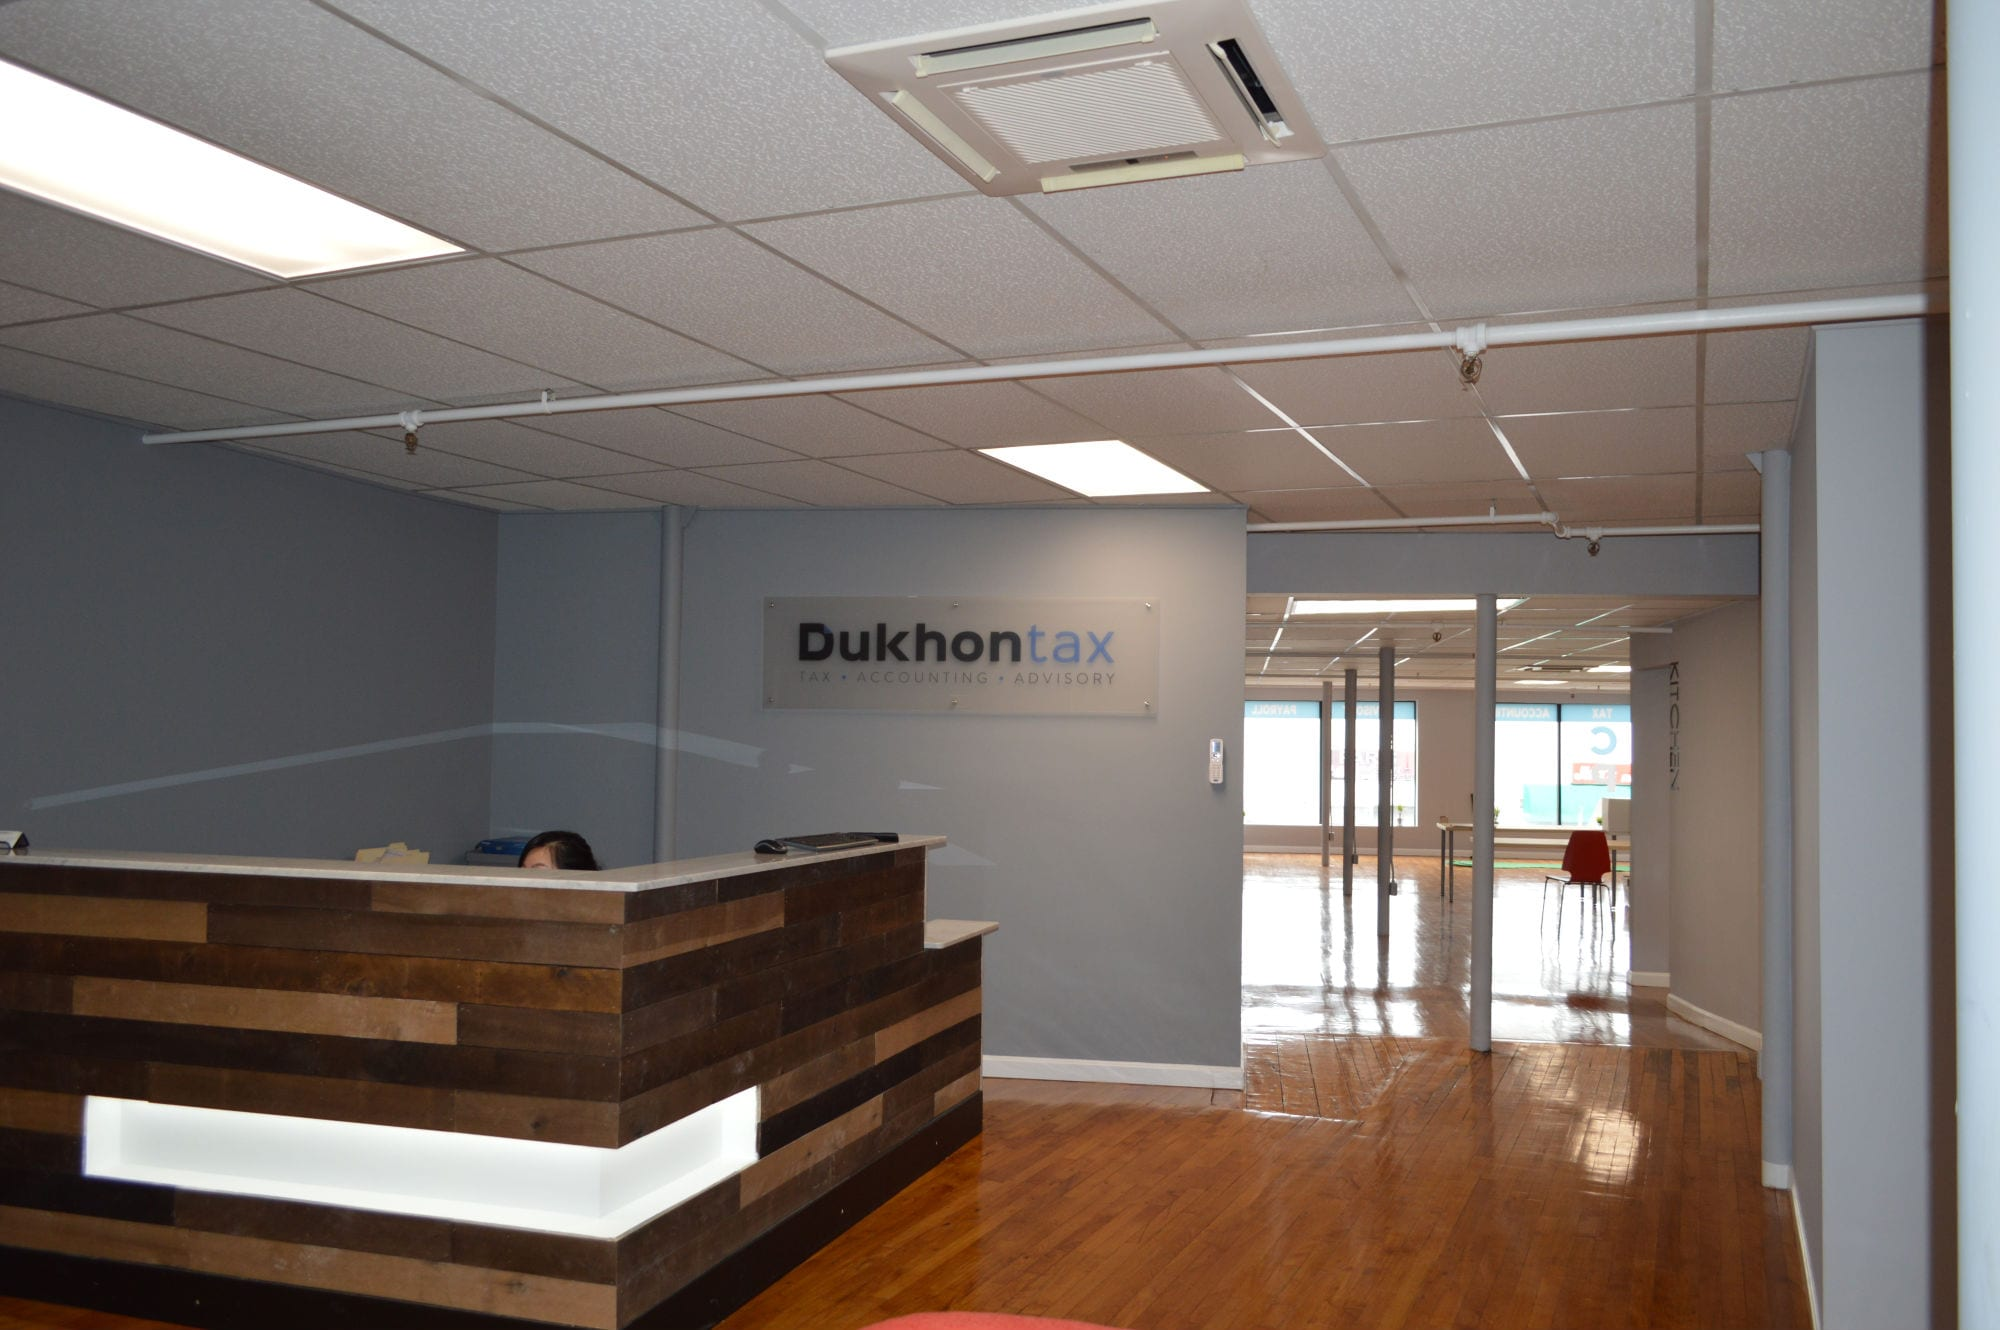 Dukhon Tax HVAC Commercial Project